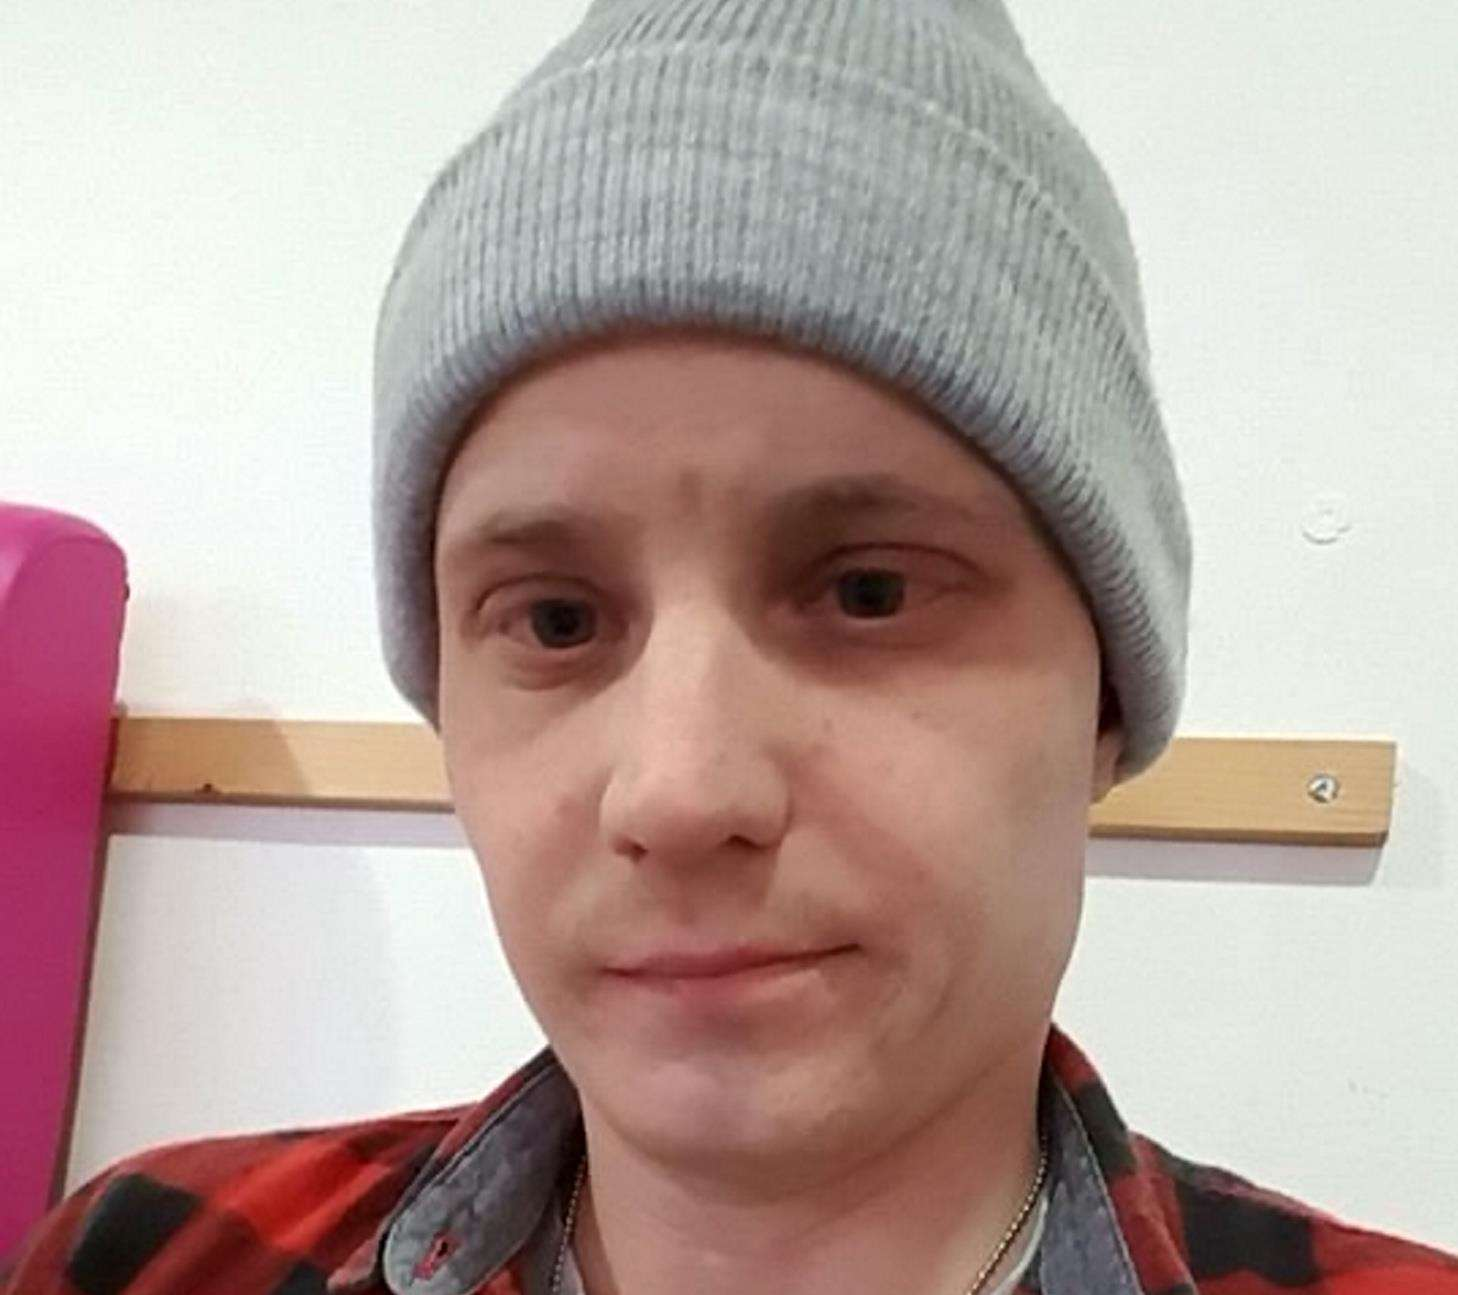 Simon Thompson underwent chemotherapy as he battled stage 4 Non Hodgkin's Lymphoma. Picture: SWNS